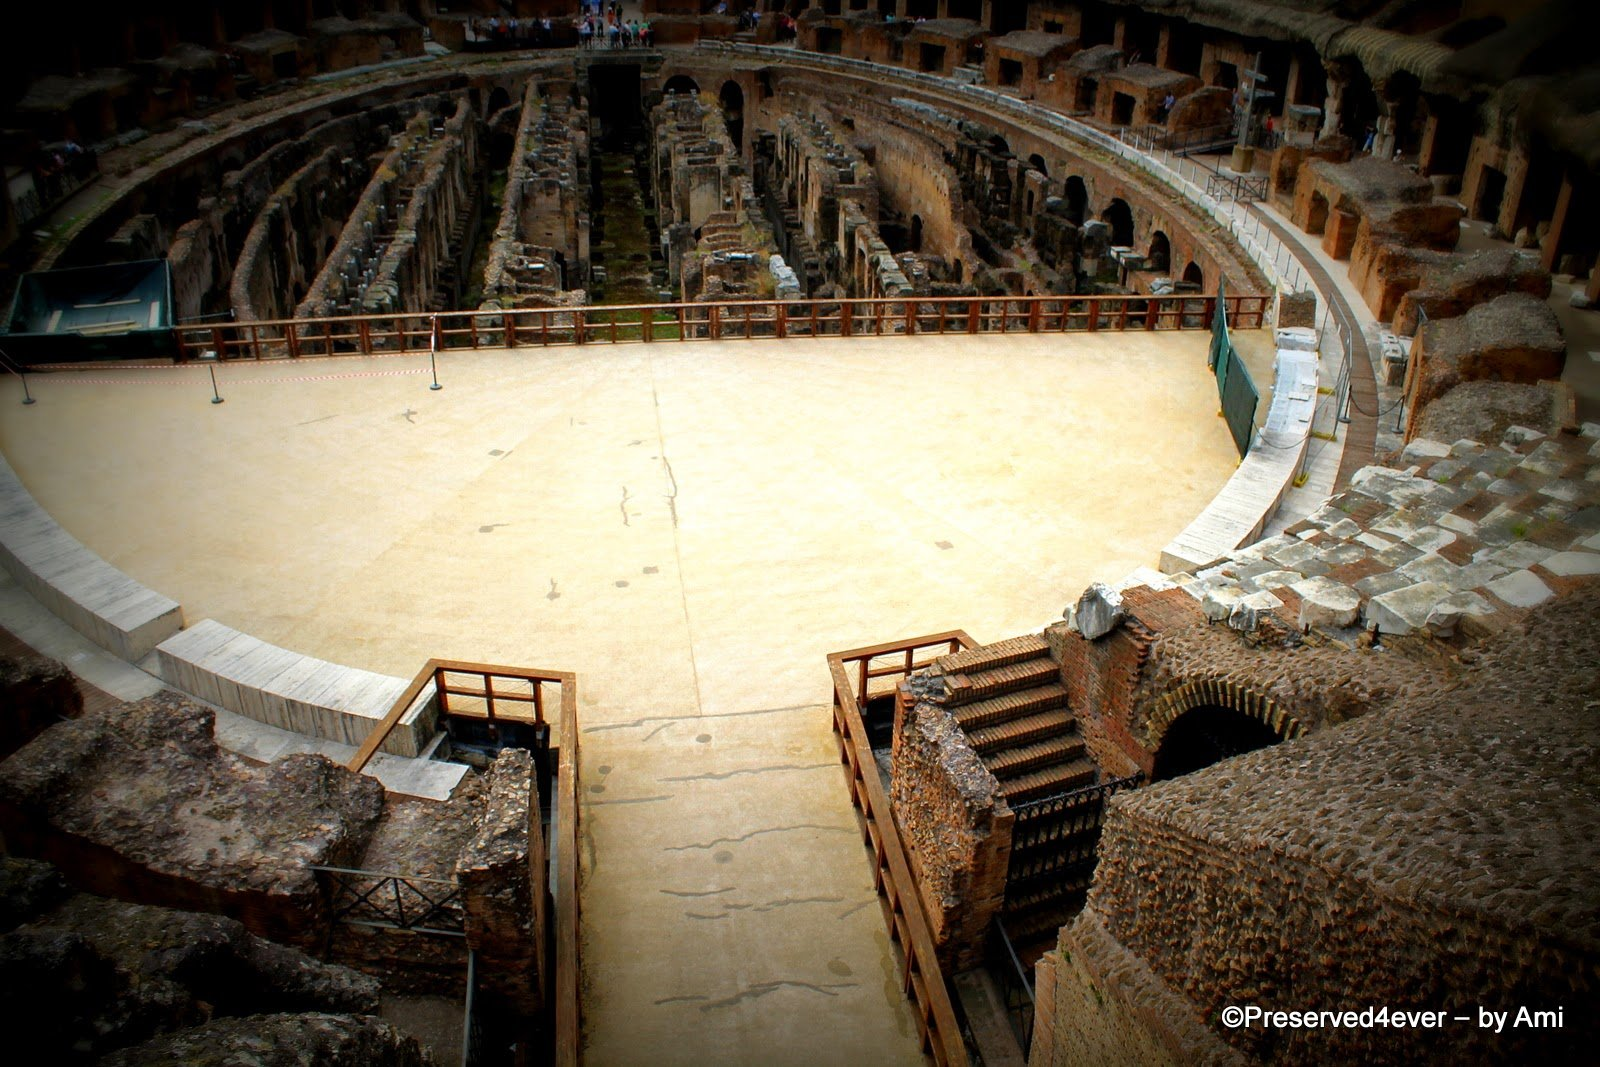 View of the Arena and the trapdoors and cages of the Colosseum